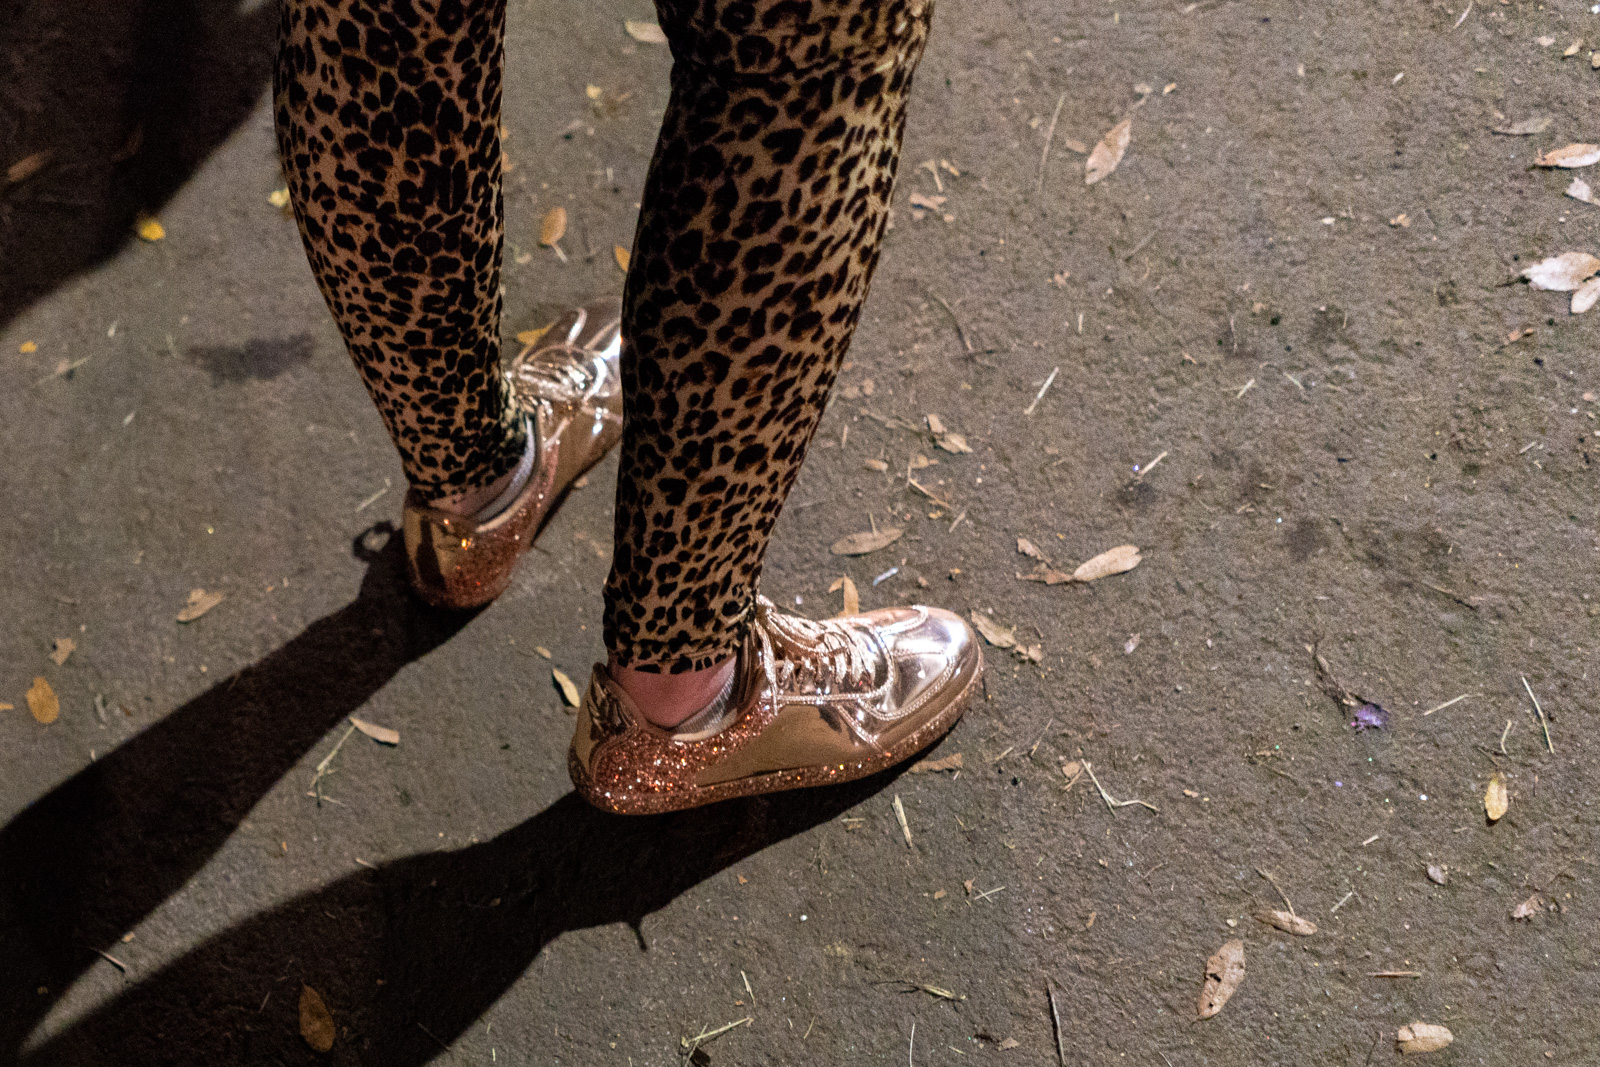 Leopard leggings during Mardi Gras in New Orleans